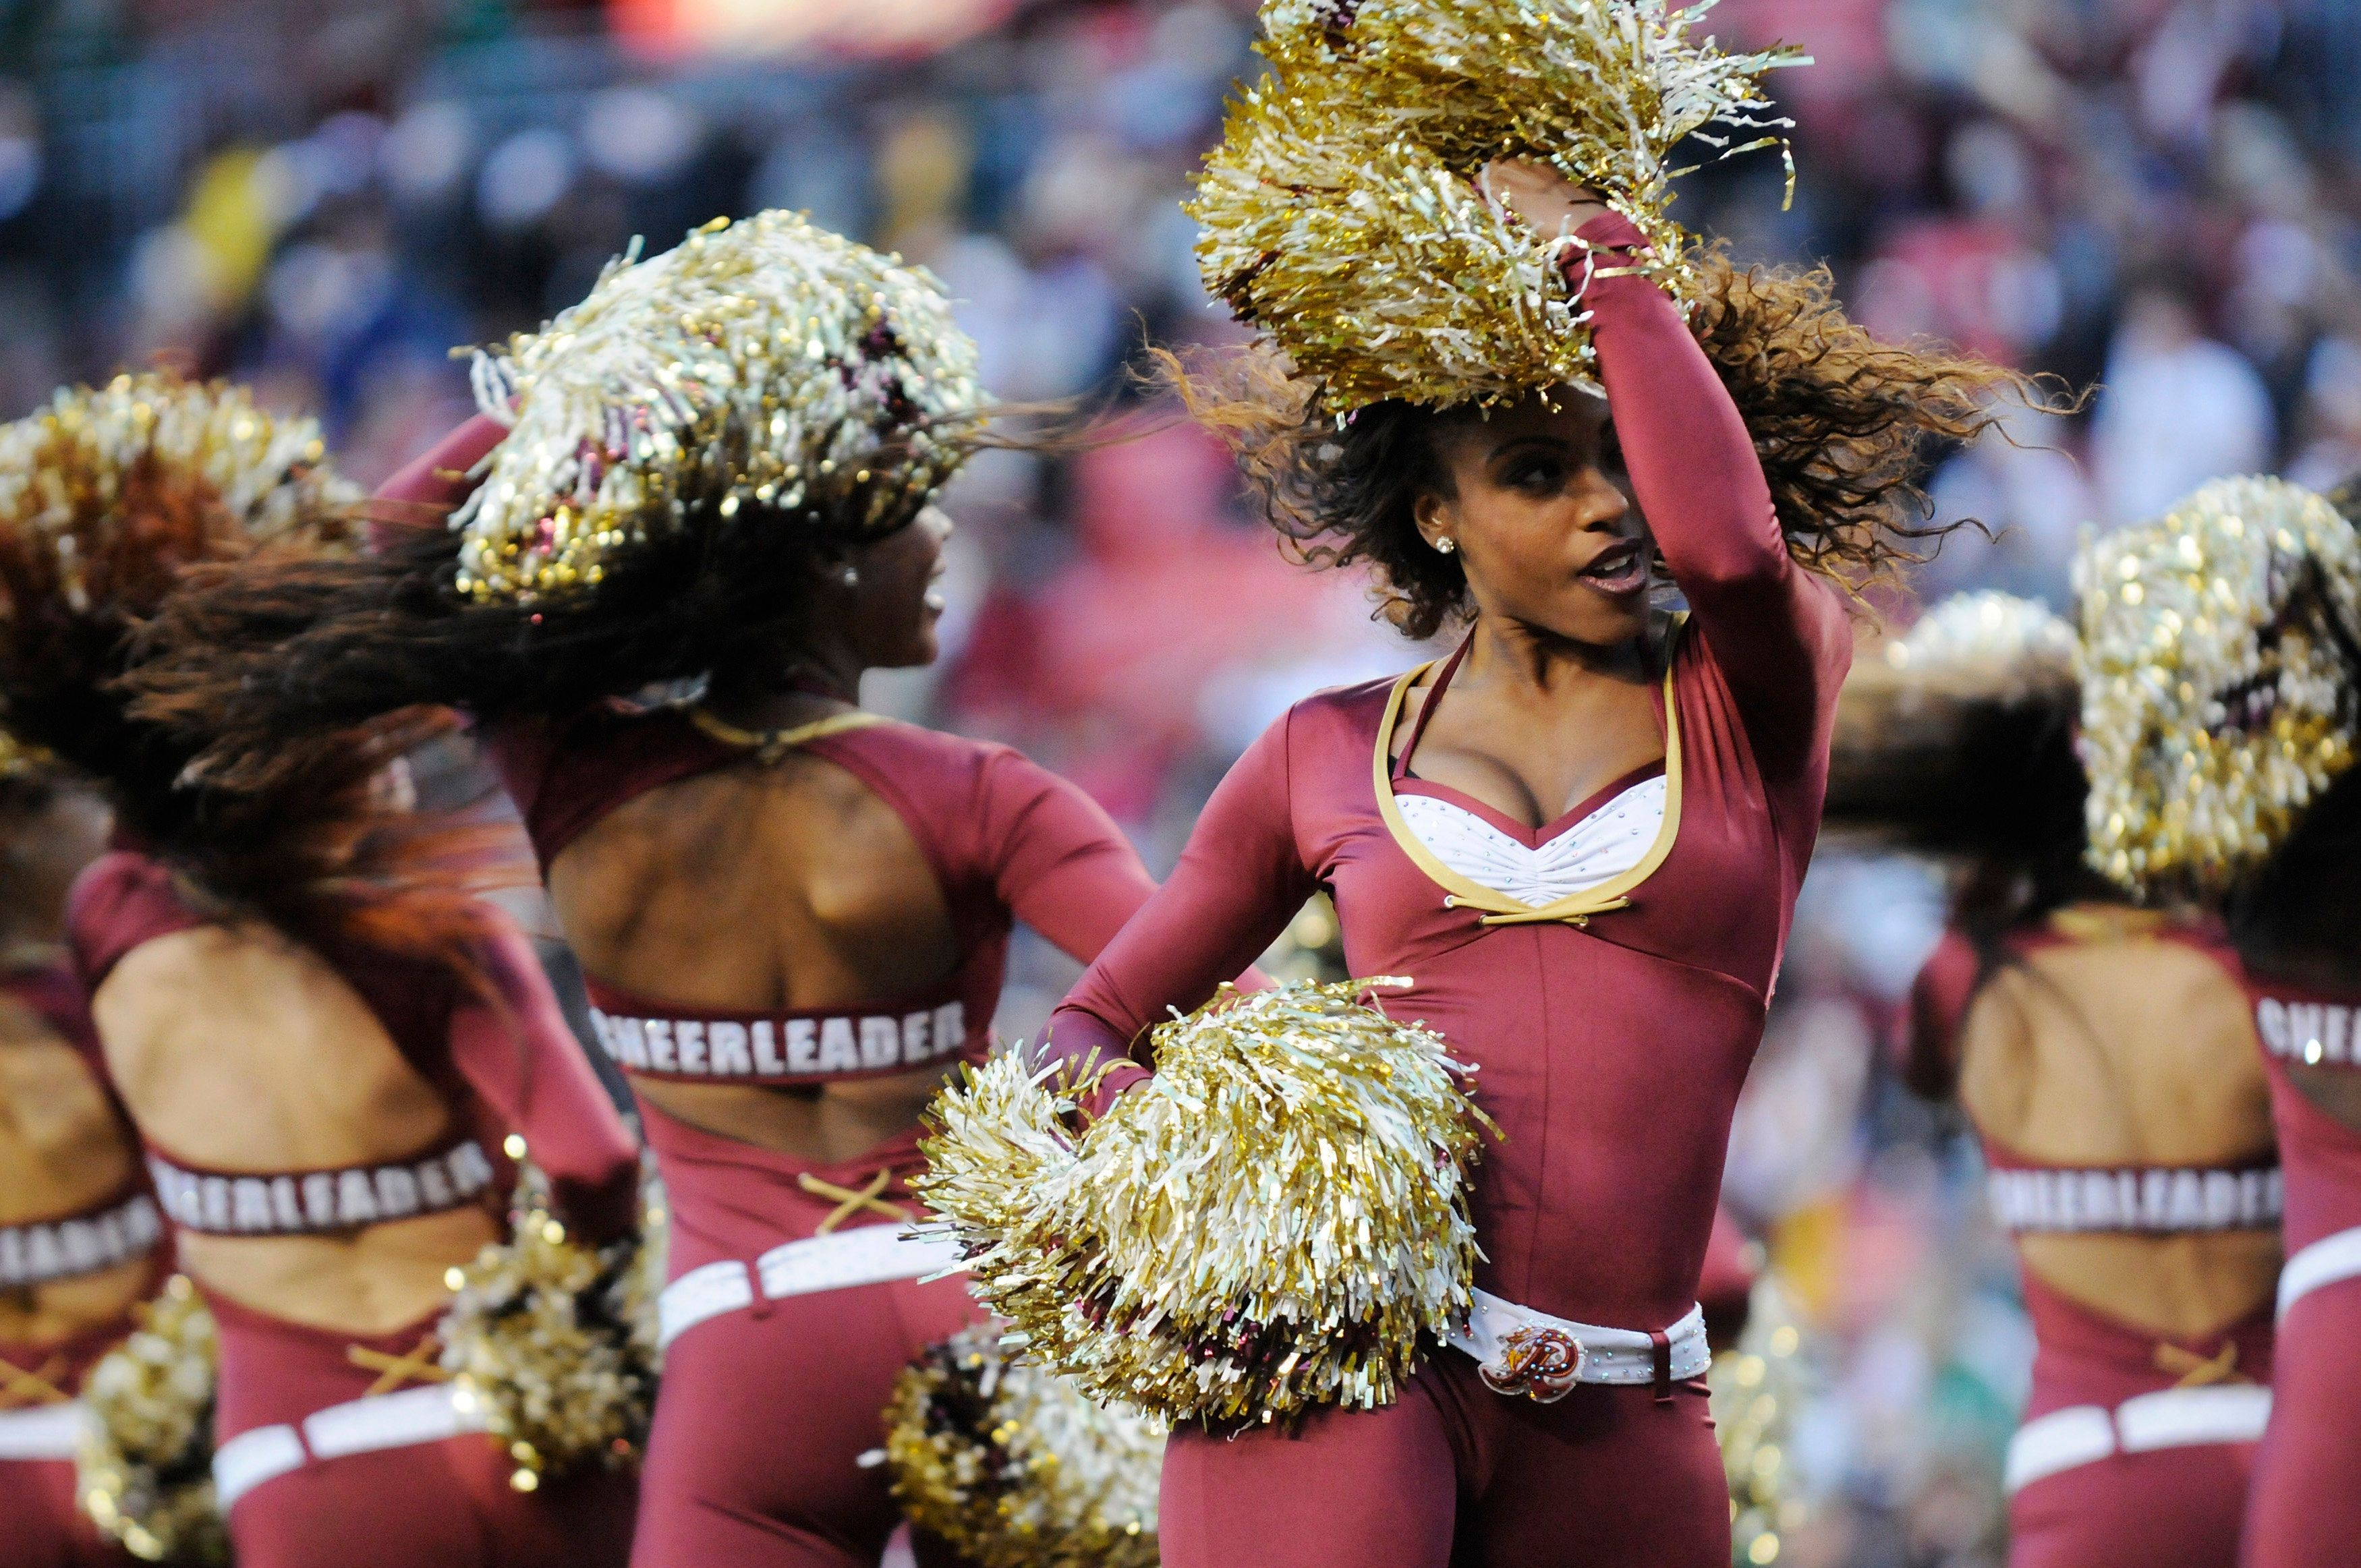 College cheerleaders sex tape scandal rather valuable